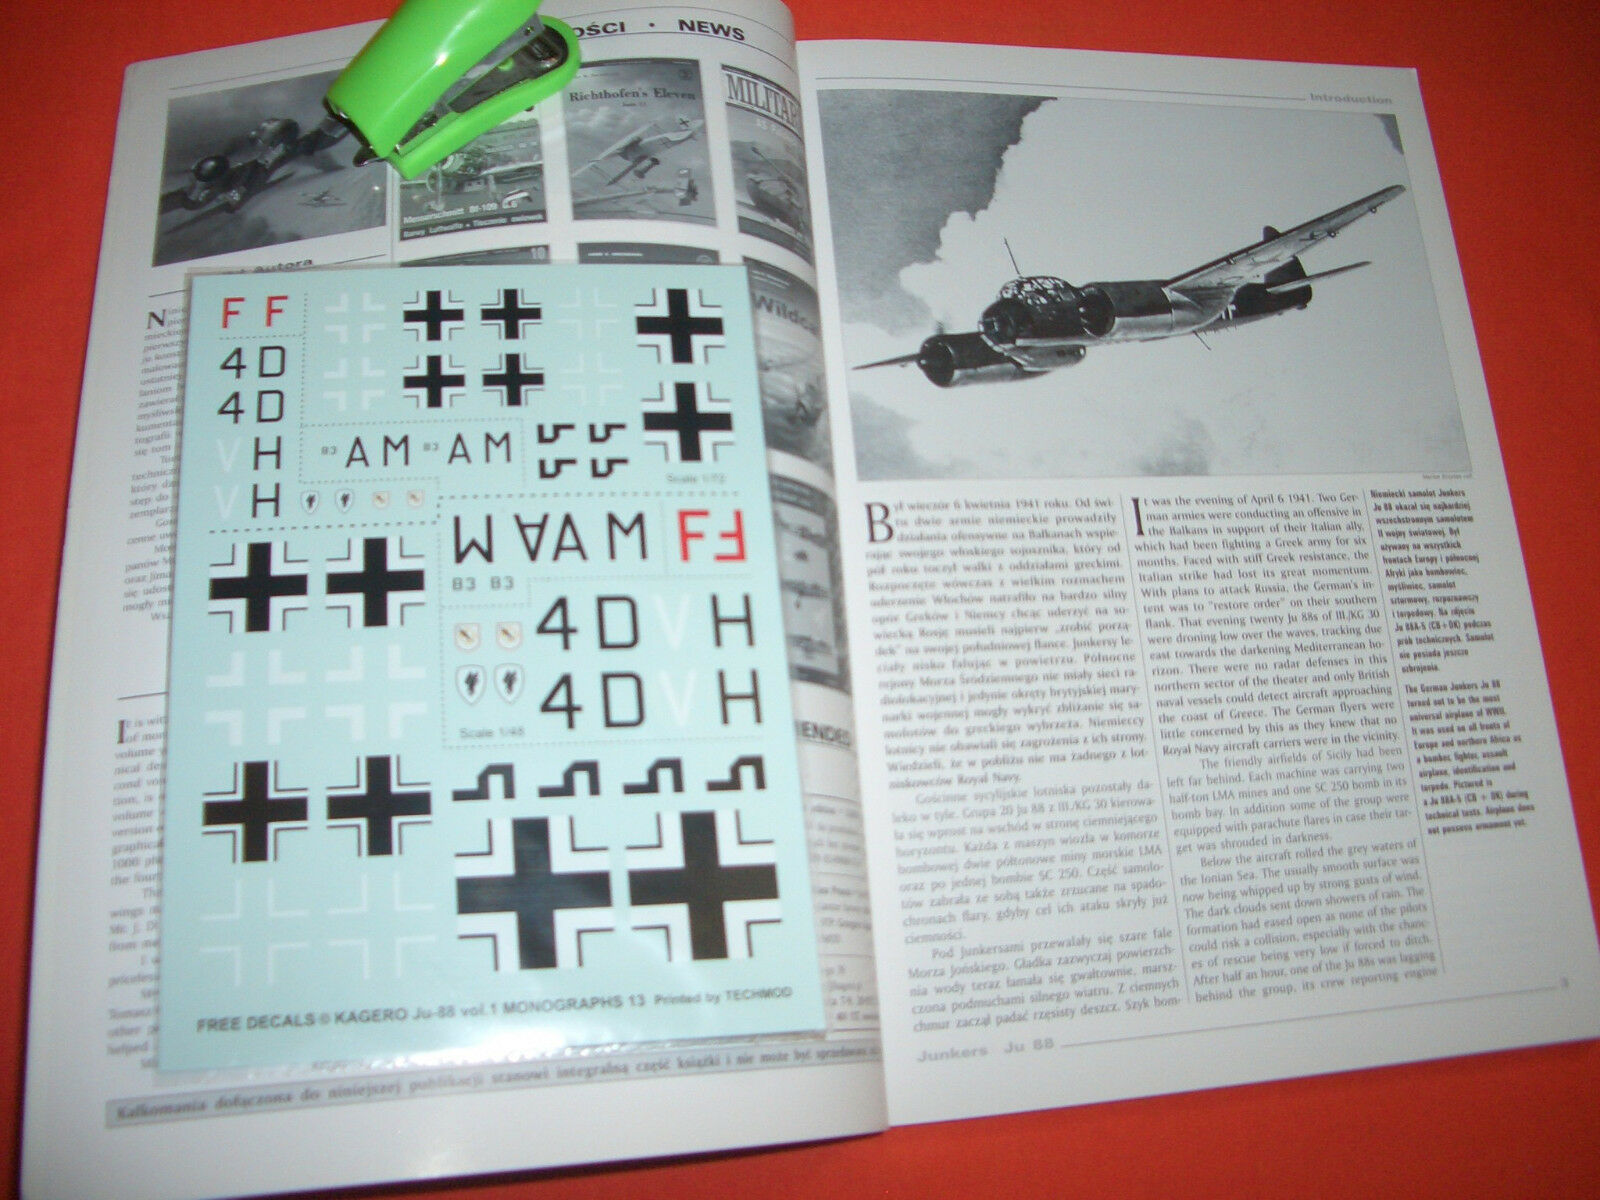 Kagero Monographs 13, Junkers Ju 88 Vol.I & Free Decals